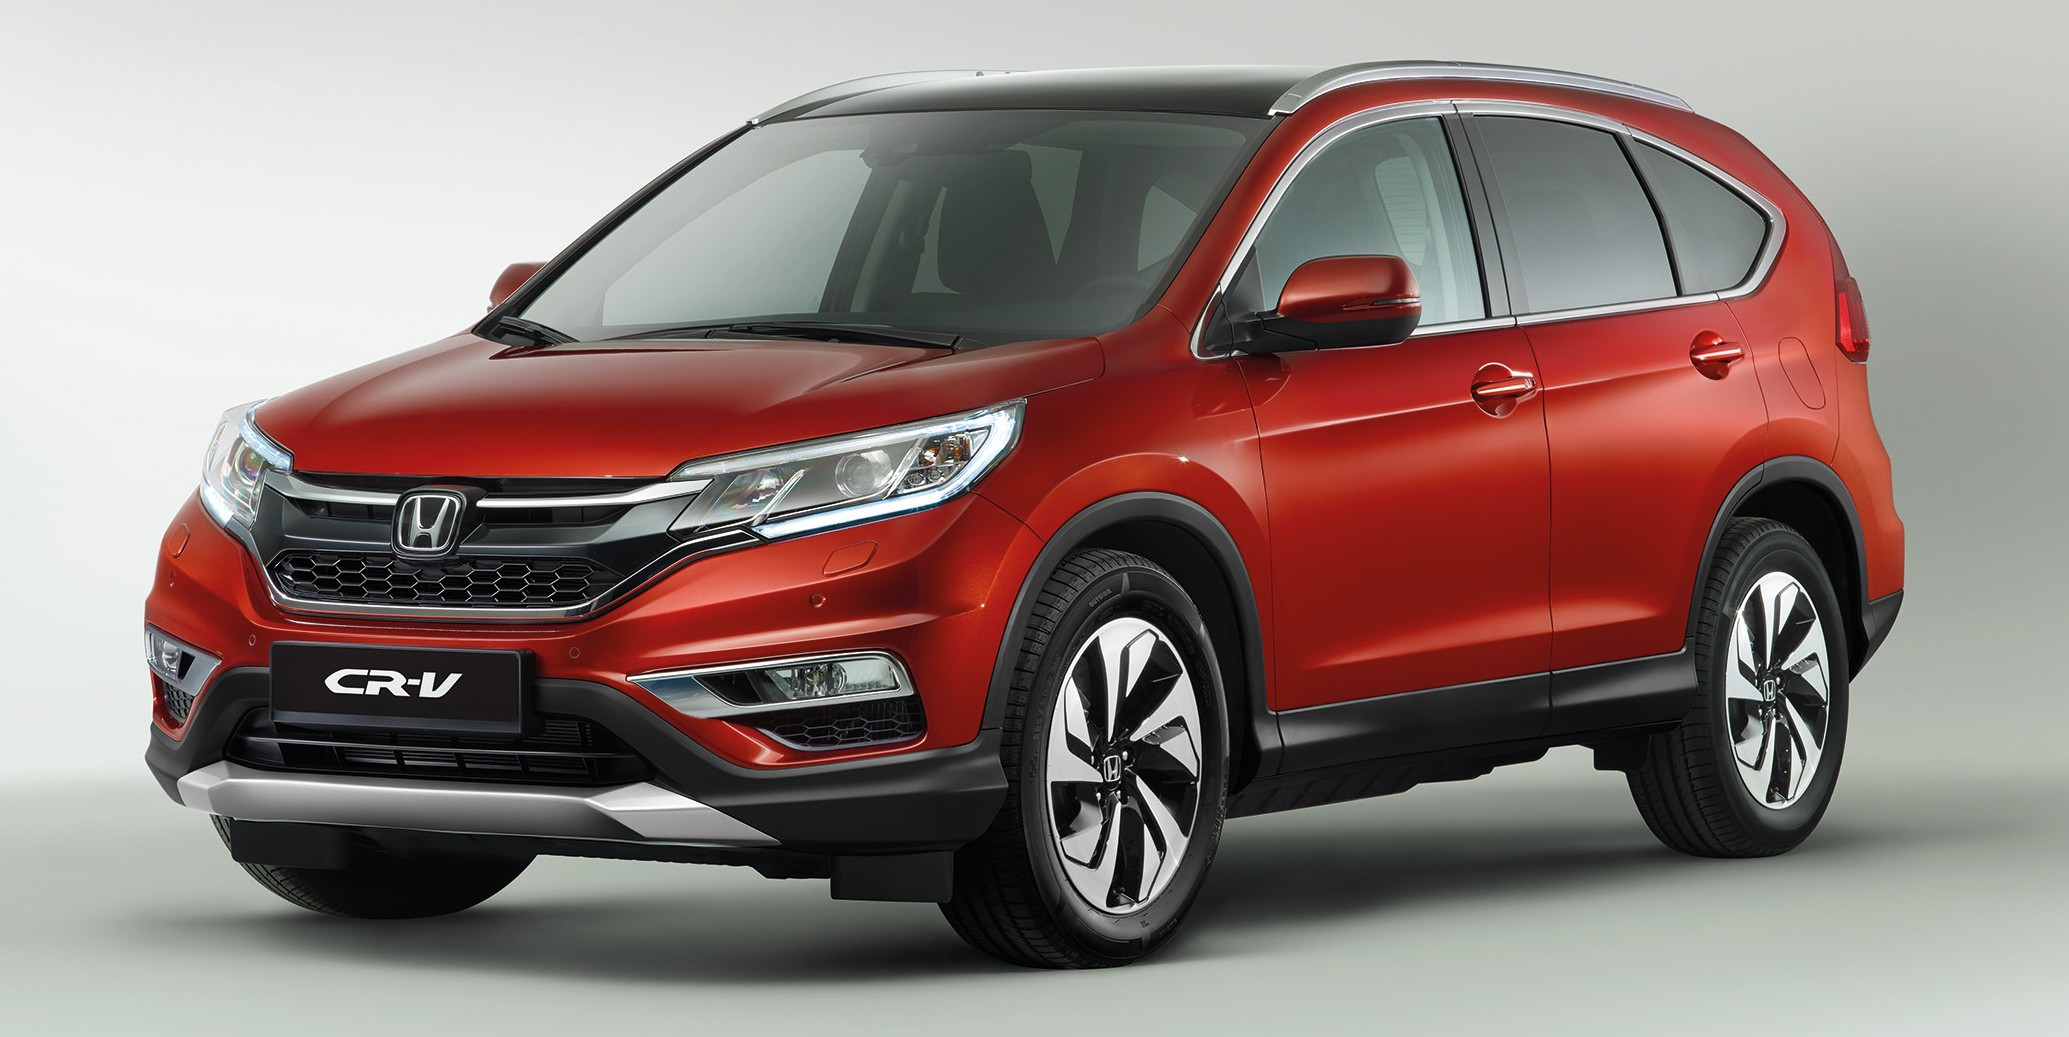 honda cr v to get intelligent adaptive cruise control world 39 s first predictive cruise control. Black Bedroom Furniture Sets. Home Design Ideas